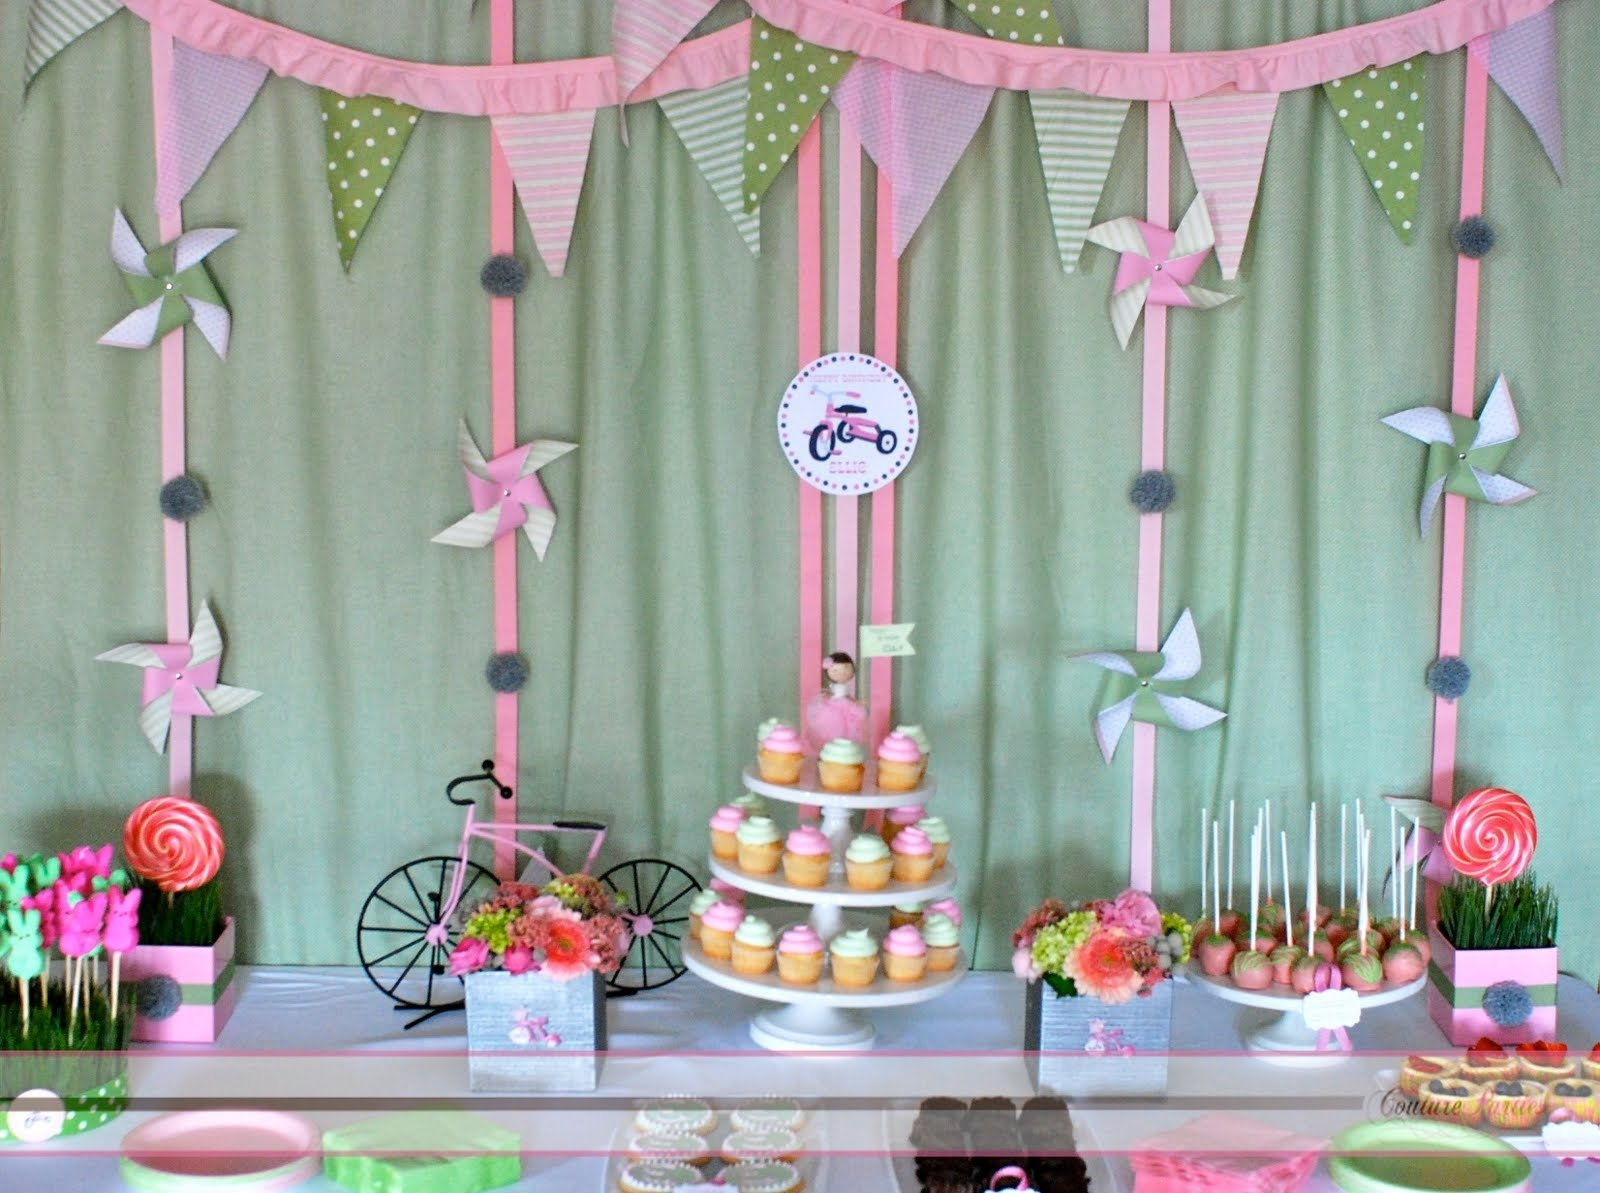 10 Attractive Girls 10Th Birthday Party Ideas 50 birthday party themes for girls i heart nap time 34